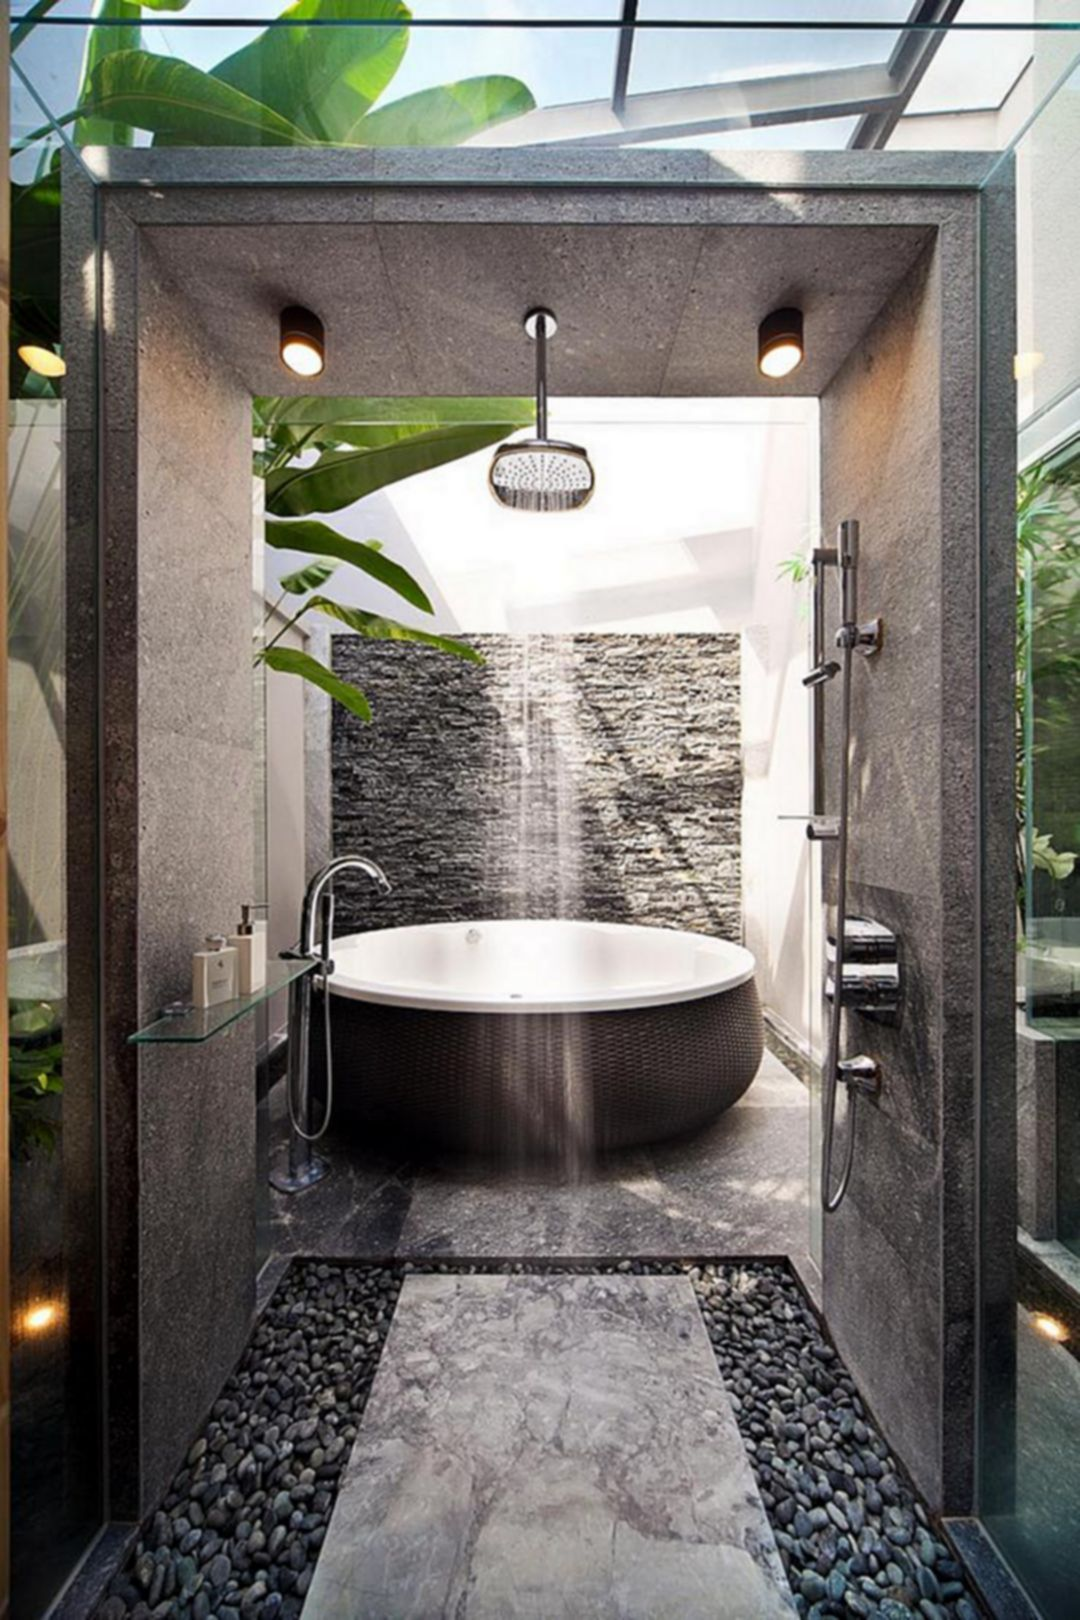 25 Stylish Hotel Bathroom Design Ideas That Can Be Applied To Your Home